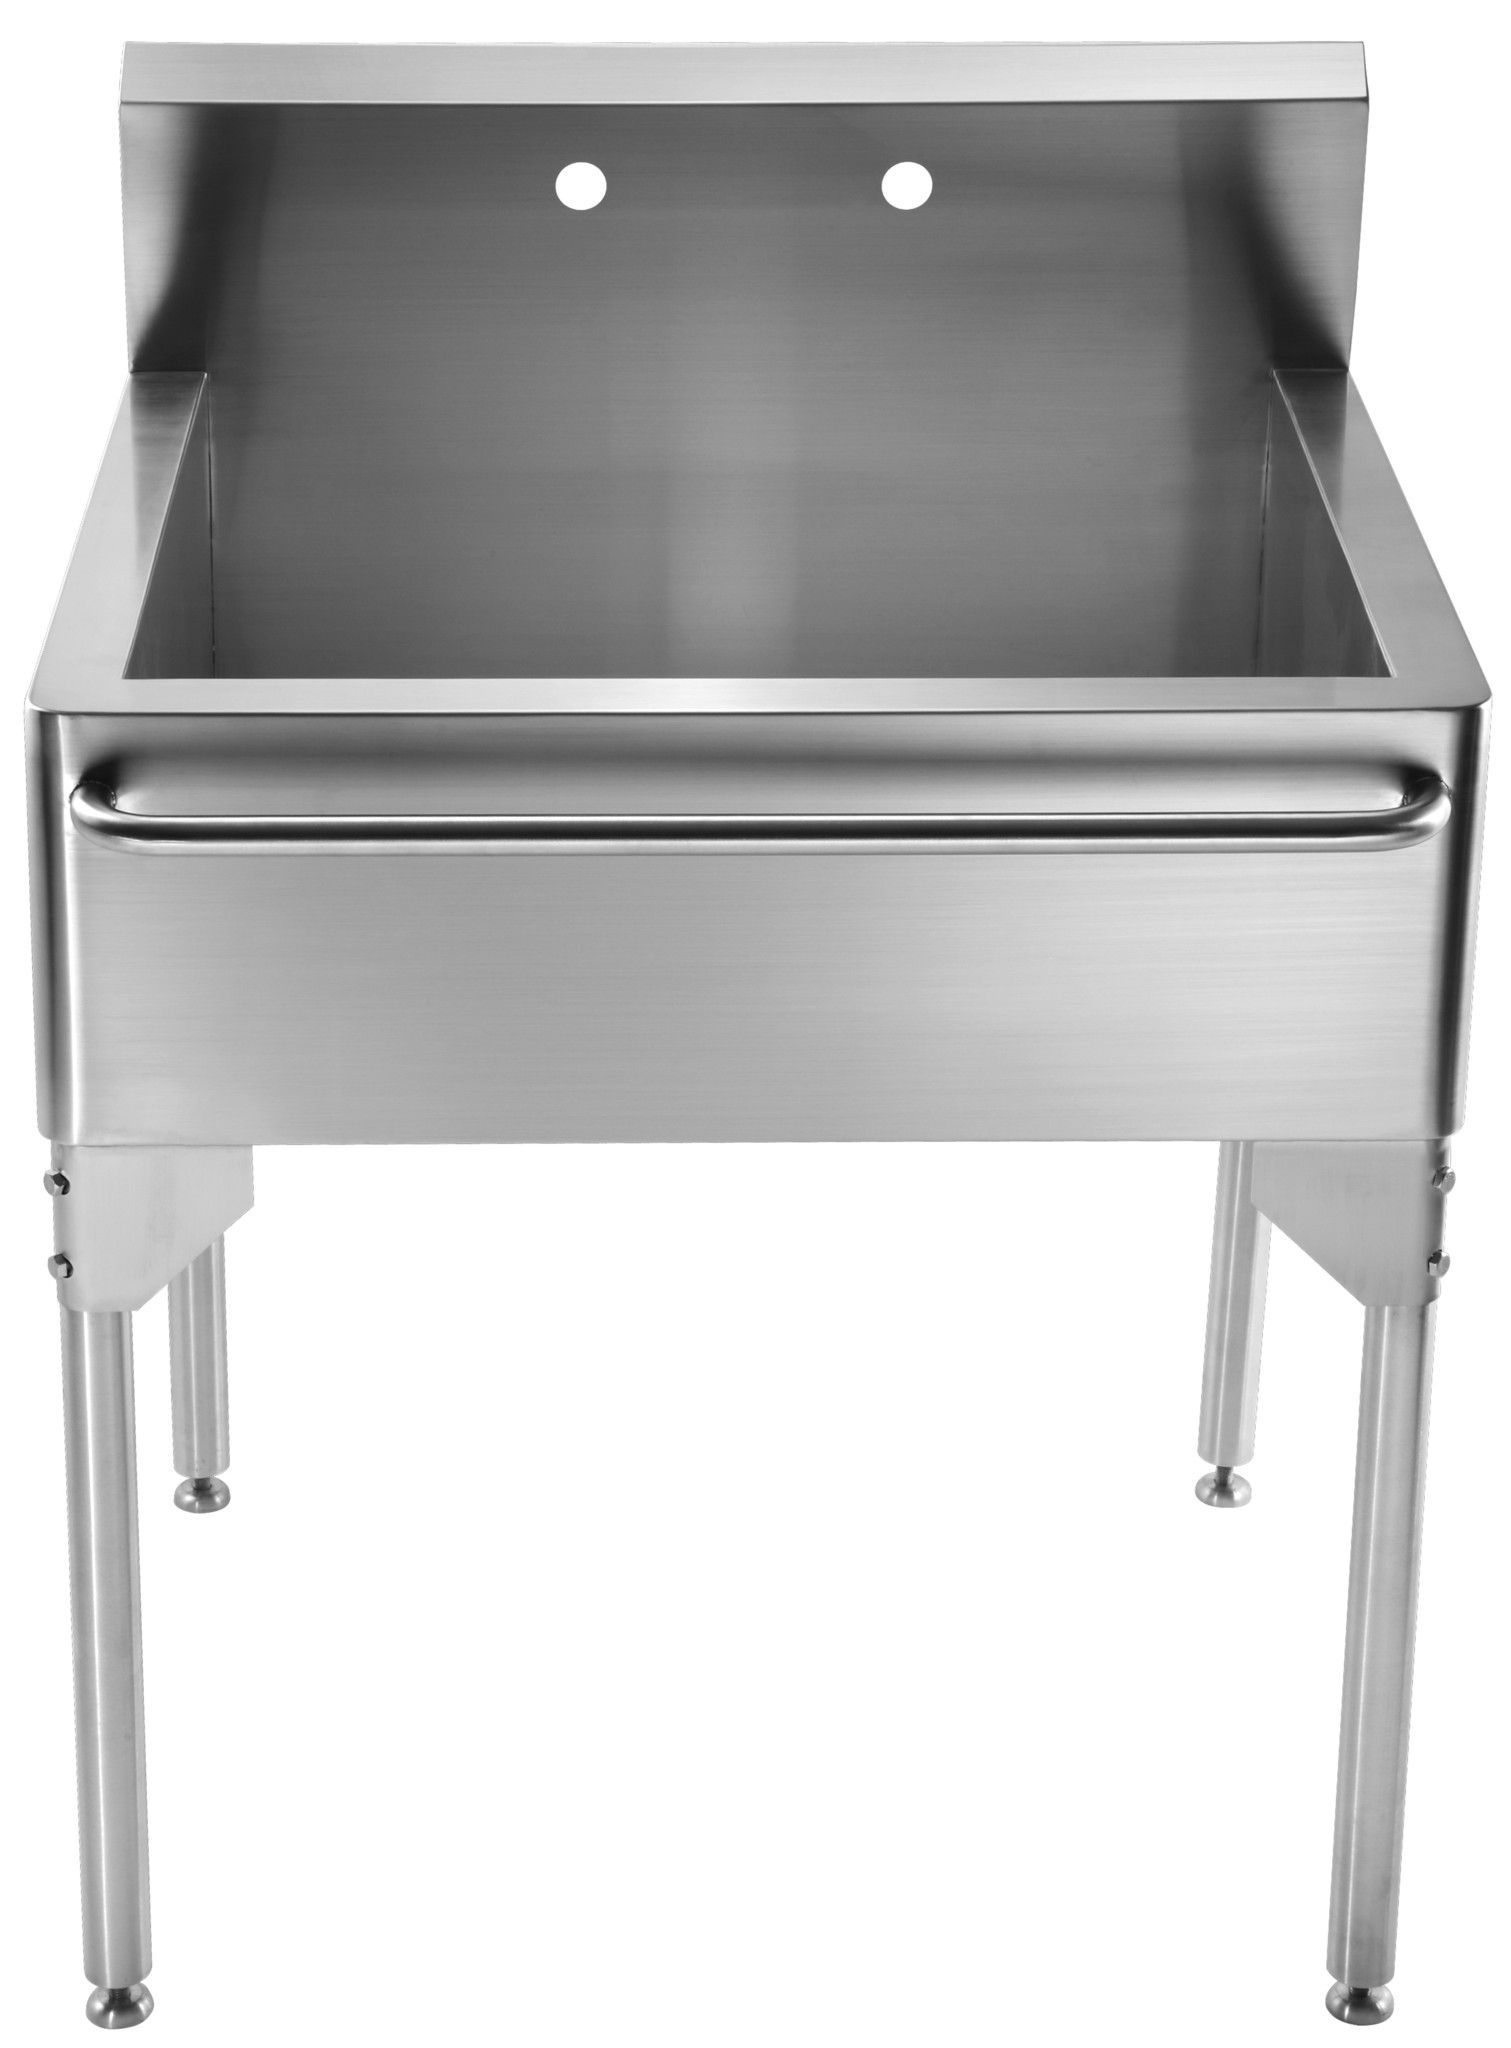 Pearlhaus Double Bowl Commerical Freestanding Utility Sink